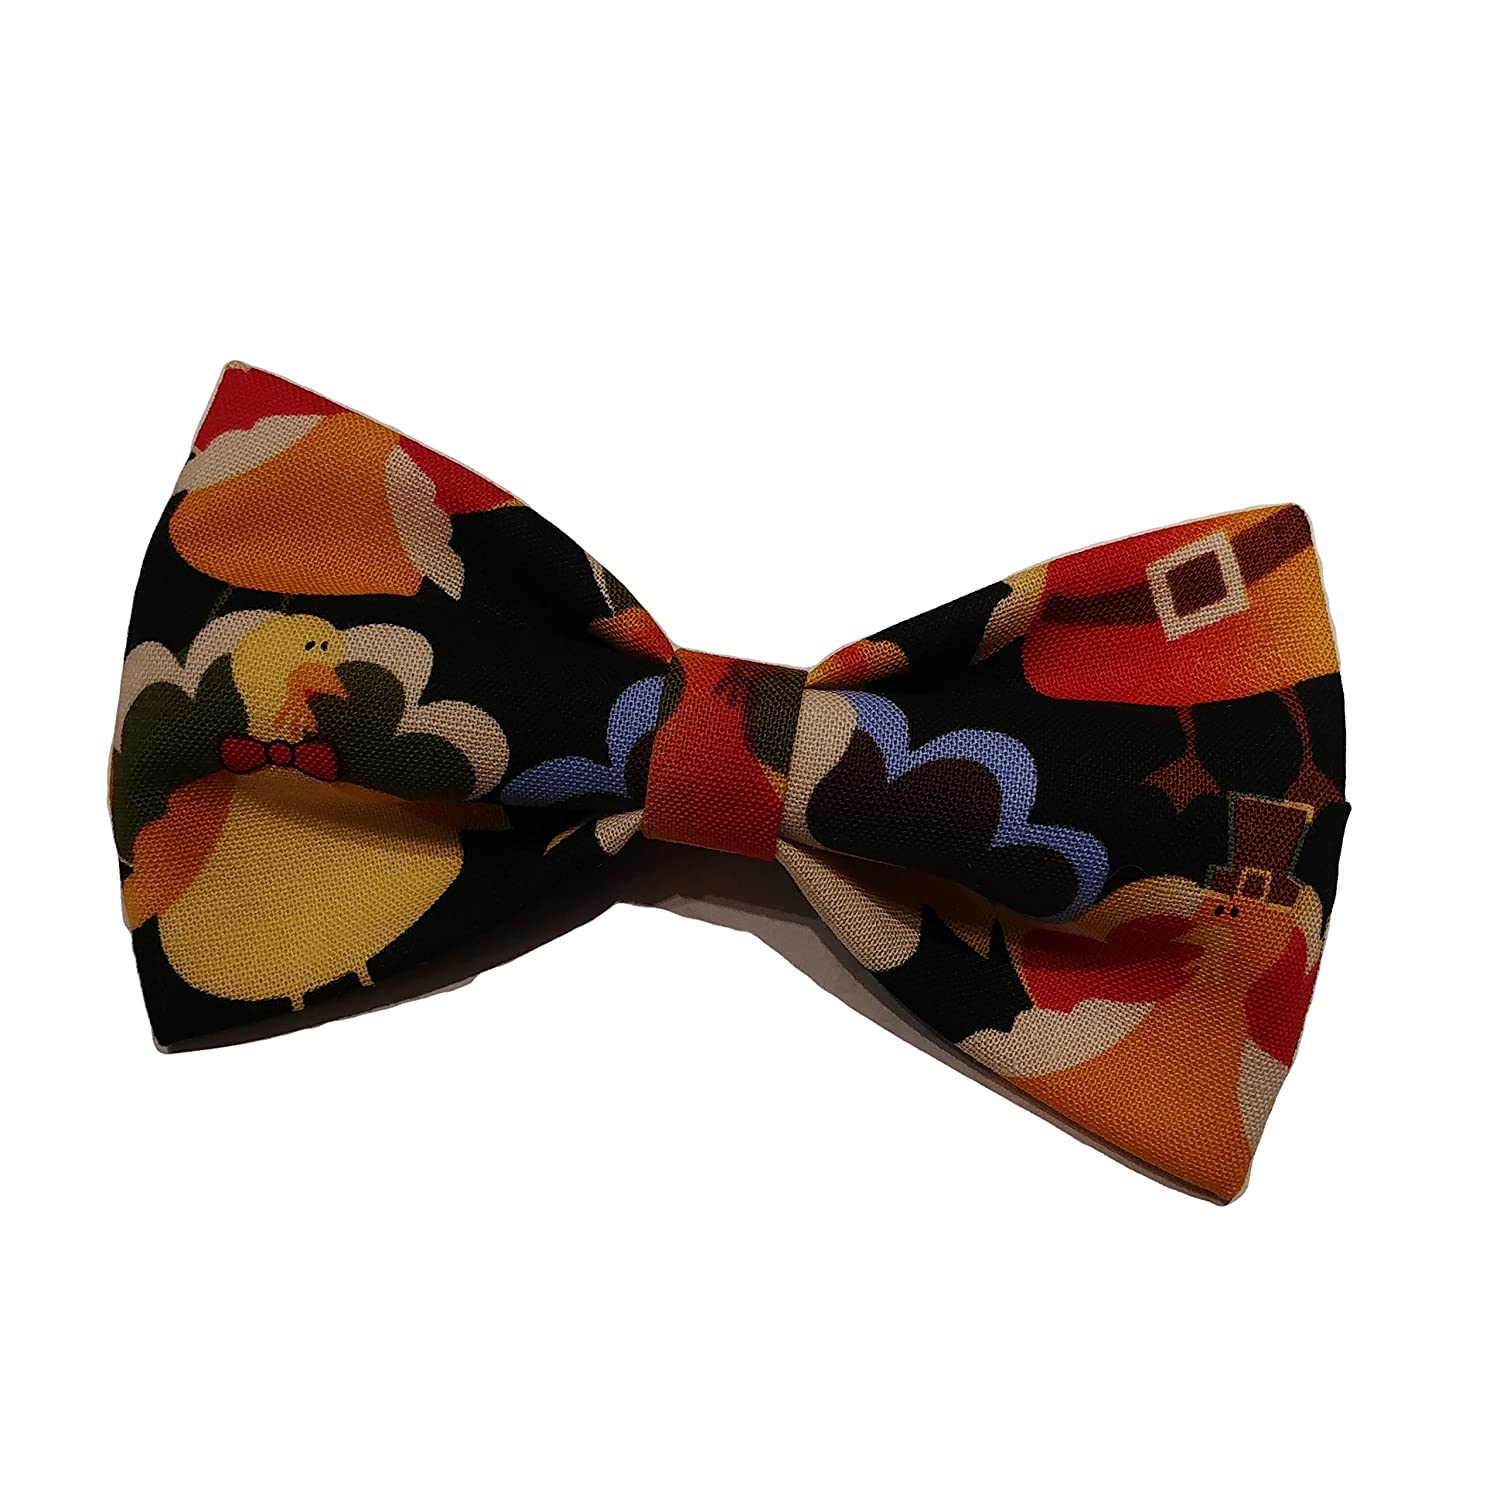 Thanksgiving Turkeys Bow Tie - Clip on Bowtie - Holiday